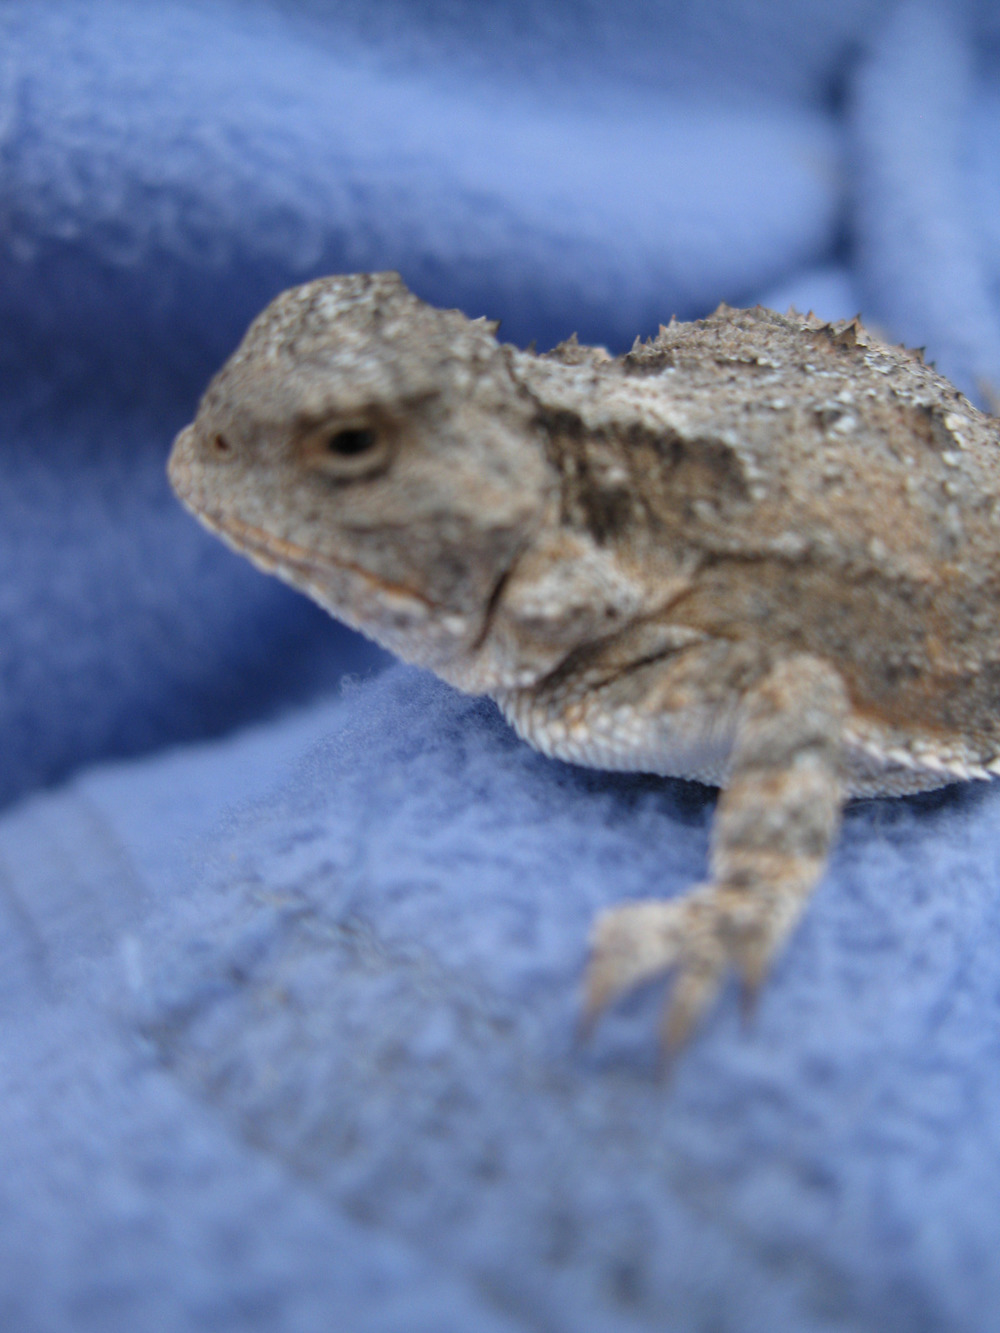 tiny horned toad